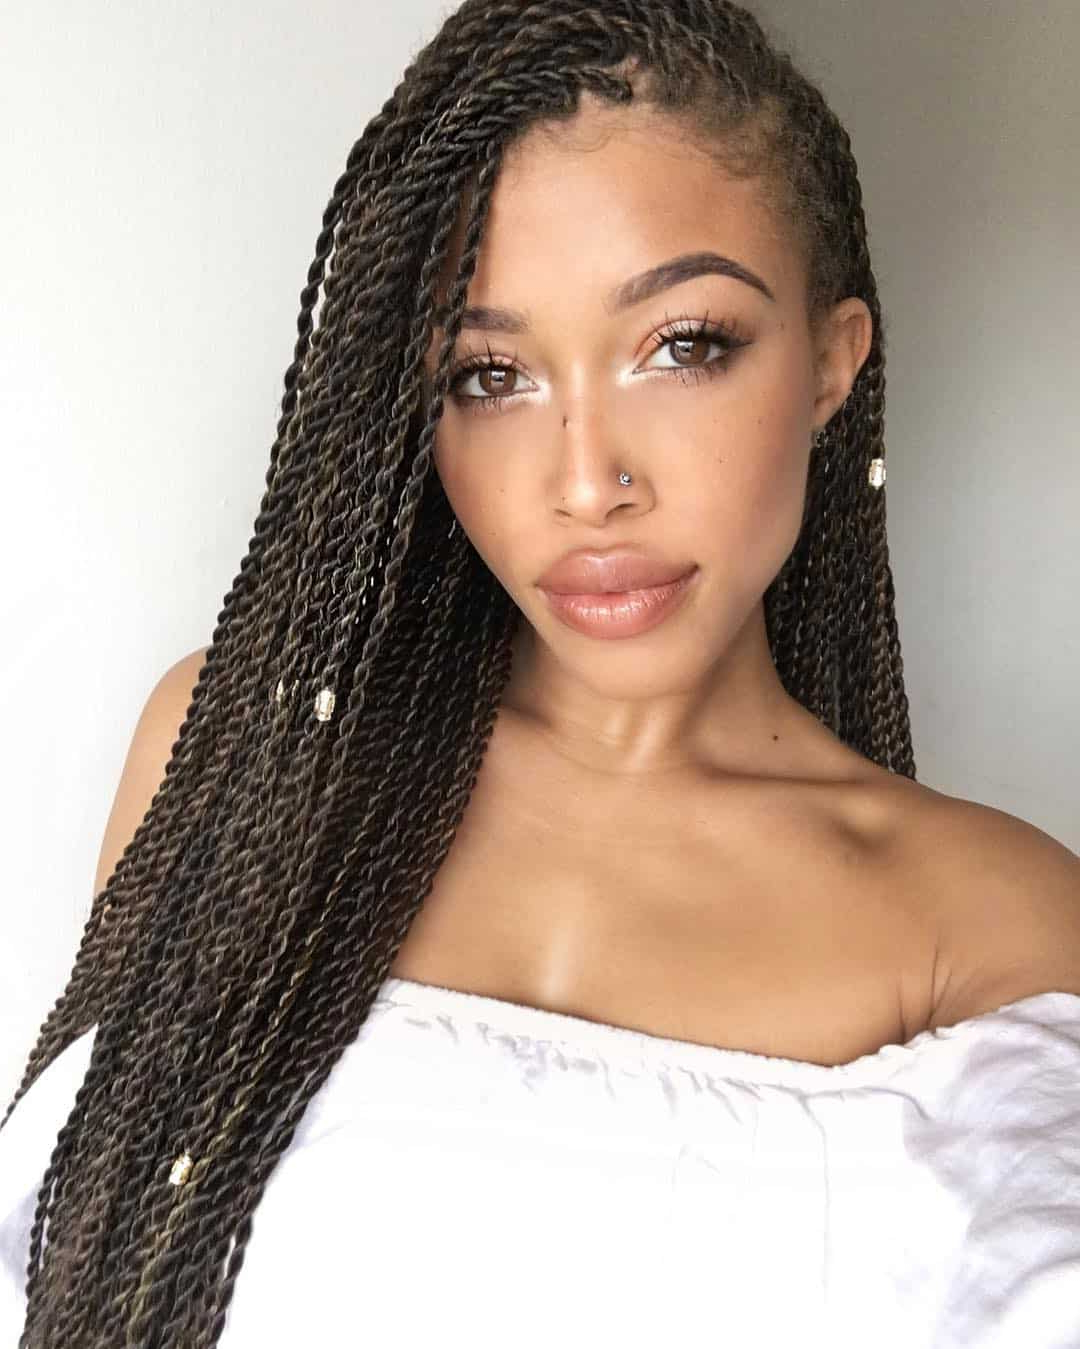 29 Magnificent Micro Braid Hairstyles For The Next Season In Well Known Black Twists Micro Braids With Golden Highlights (View 4 of 20)